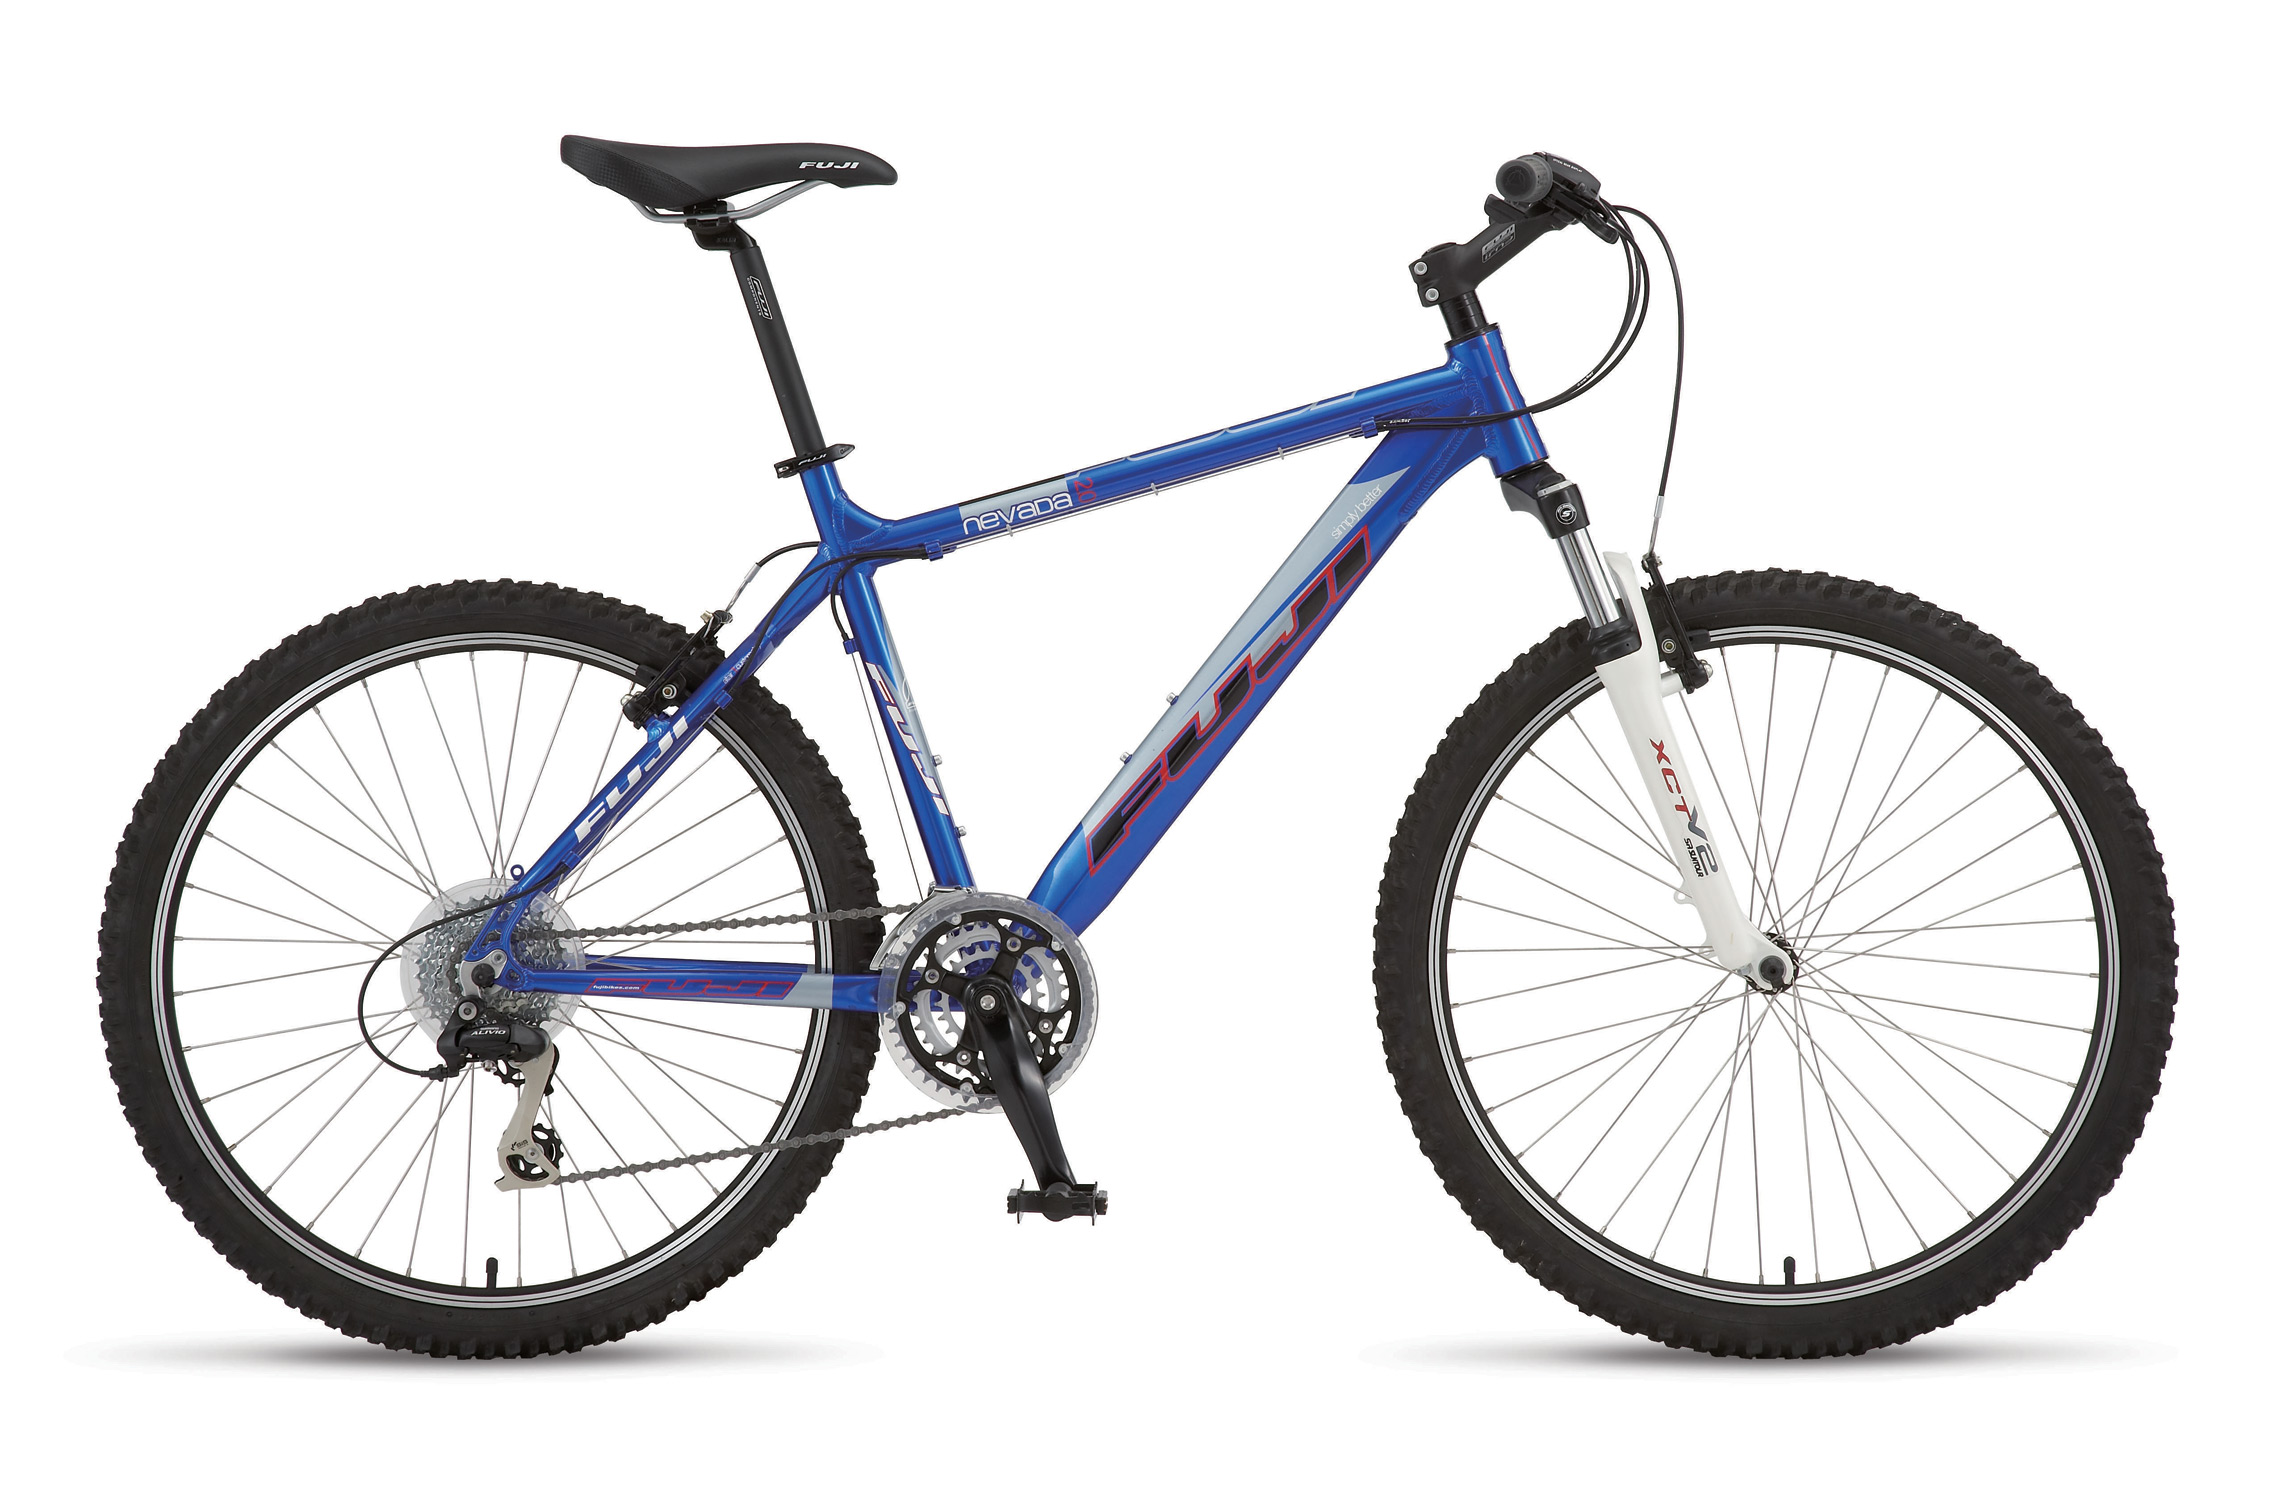 MTB Key Features of the Fuji Nevada 2.0 Bike Electric Blue M/L (22In): SIZES 15, 17, 19, 20.5, 22, 24 COLOR(S) Electric Blue MAIN FRAME Fuji Altair 1 Aluminum with PowerDiamond down tube, top tube/seat tube gusset, Integrated head tube, down tube gusset, double water bottle mounts REAR TRIANGLE Fuji Altair 1, custom tapered Aluminum with Edge S-bend MonoStay, Cold forged dropout with CNCD disc mount and replaceable hanger FORK SR Suntour XCT-V2-MLO 28mm stanchions, 80mm travel w/Mechanical LO CRANKSET Lasco Forged Alloy , 22/32/42T with Chainguard BOTTOM BRACKET Sealed Cartridge Bearing ST PEDALS Wellgo ATB w/steel cage FRONT DERAILLEUR NEW Shimano Acera, 31.8mm REAR DERAILLEUR Shimano Alivio SHIFTERS NEW Shimano Acera ST-M360 EZ Fire shifter/brake, 24-speed CASSETTE Sunrace CSM-56, 11-32T 8-speed CHAIN Sunrace CNM-84 FRONT HUB Formula oversized sealed Al, 36H w/QR REAR HUB Formula oversized sealed Al cassette, 36H w/QR SPOKES 14G Stainless Steel RIMS Jalco ATB-220 Double Wall Aluminum /CNC Sidewalls TIRES ATB, 26 x 2.1 TUBES A/V ATB BRAKE SET Tektro 837AL Forged Alloy, linear pull BRAKE LEVERS NEW Shimano Acera ST-M360 Forged Alloy HEADSET V.P. 1 1/8 Press Fit Integrated, 30mm spacers HANDLEBAR Fuji Comp Riser 20 aluminum STEM Fuji Comp forged Aluminum w/removable faceplate TAPE/GRIP Fuji Dual Density Kraton rubber SADDLE Fuji Race MTB SEAT POST Fuji Aluminum micro-adjust, 350mm SEAT CLAMP Fuji Alloy, 31.8mm Laser Etched QR WEIGHT, LB./KG. 31.62/14.34 - $304.95